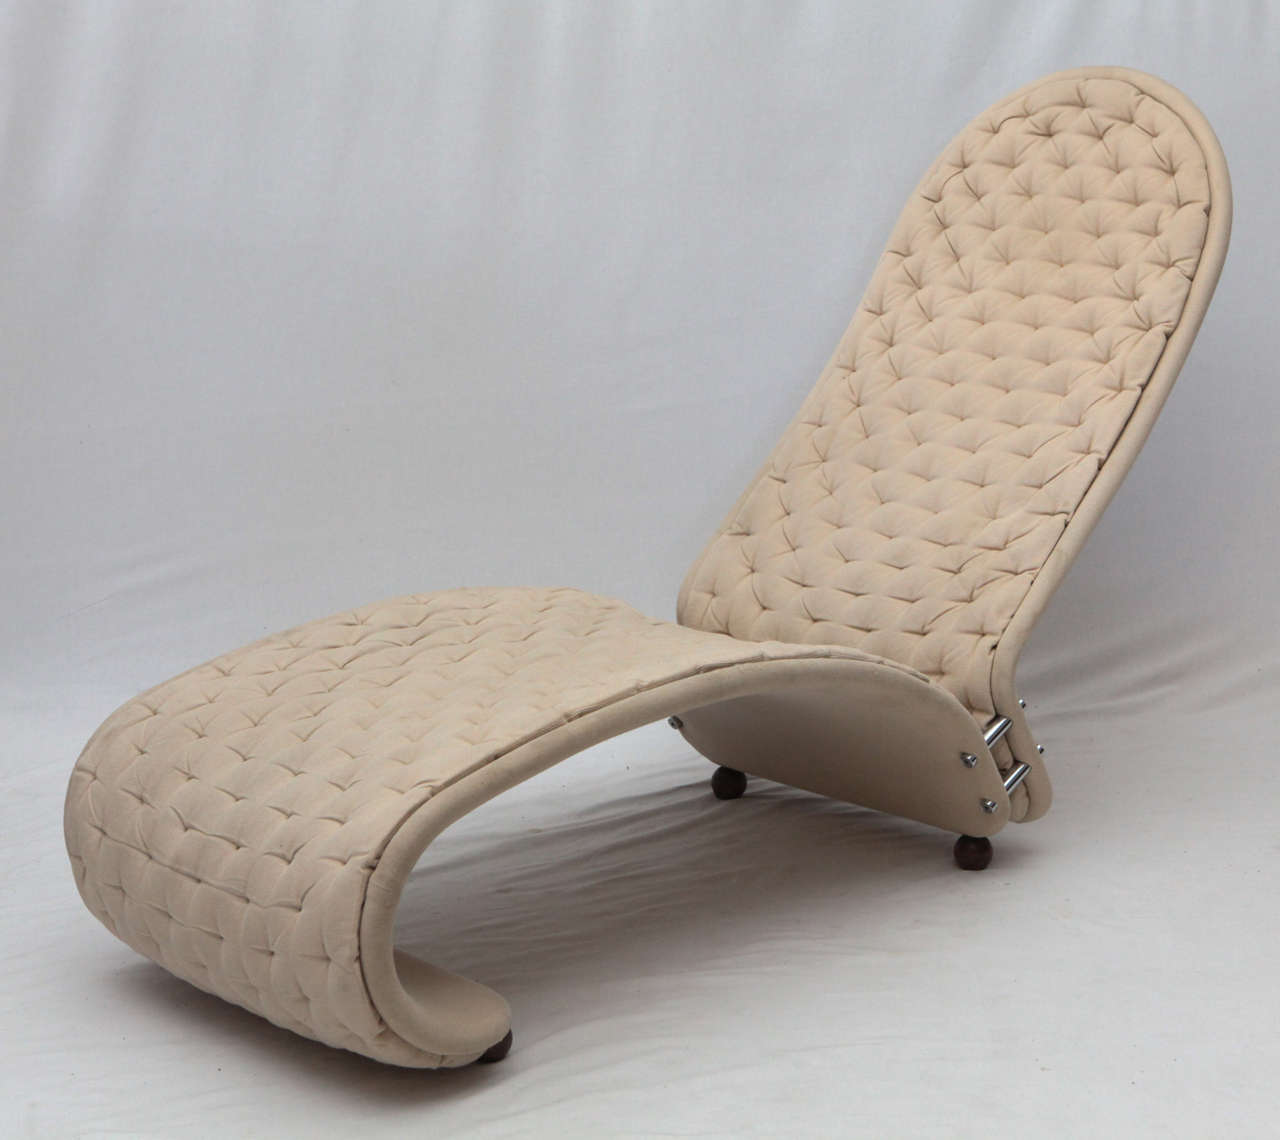 verner panton chaise for sale at 1stdibs. Black Bedroom Furniture Sets. Home Design Ideas